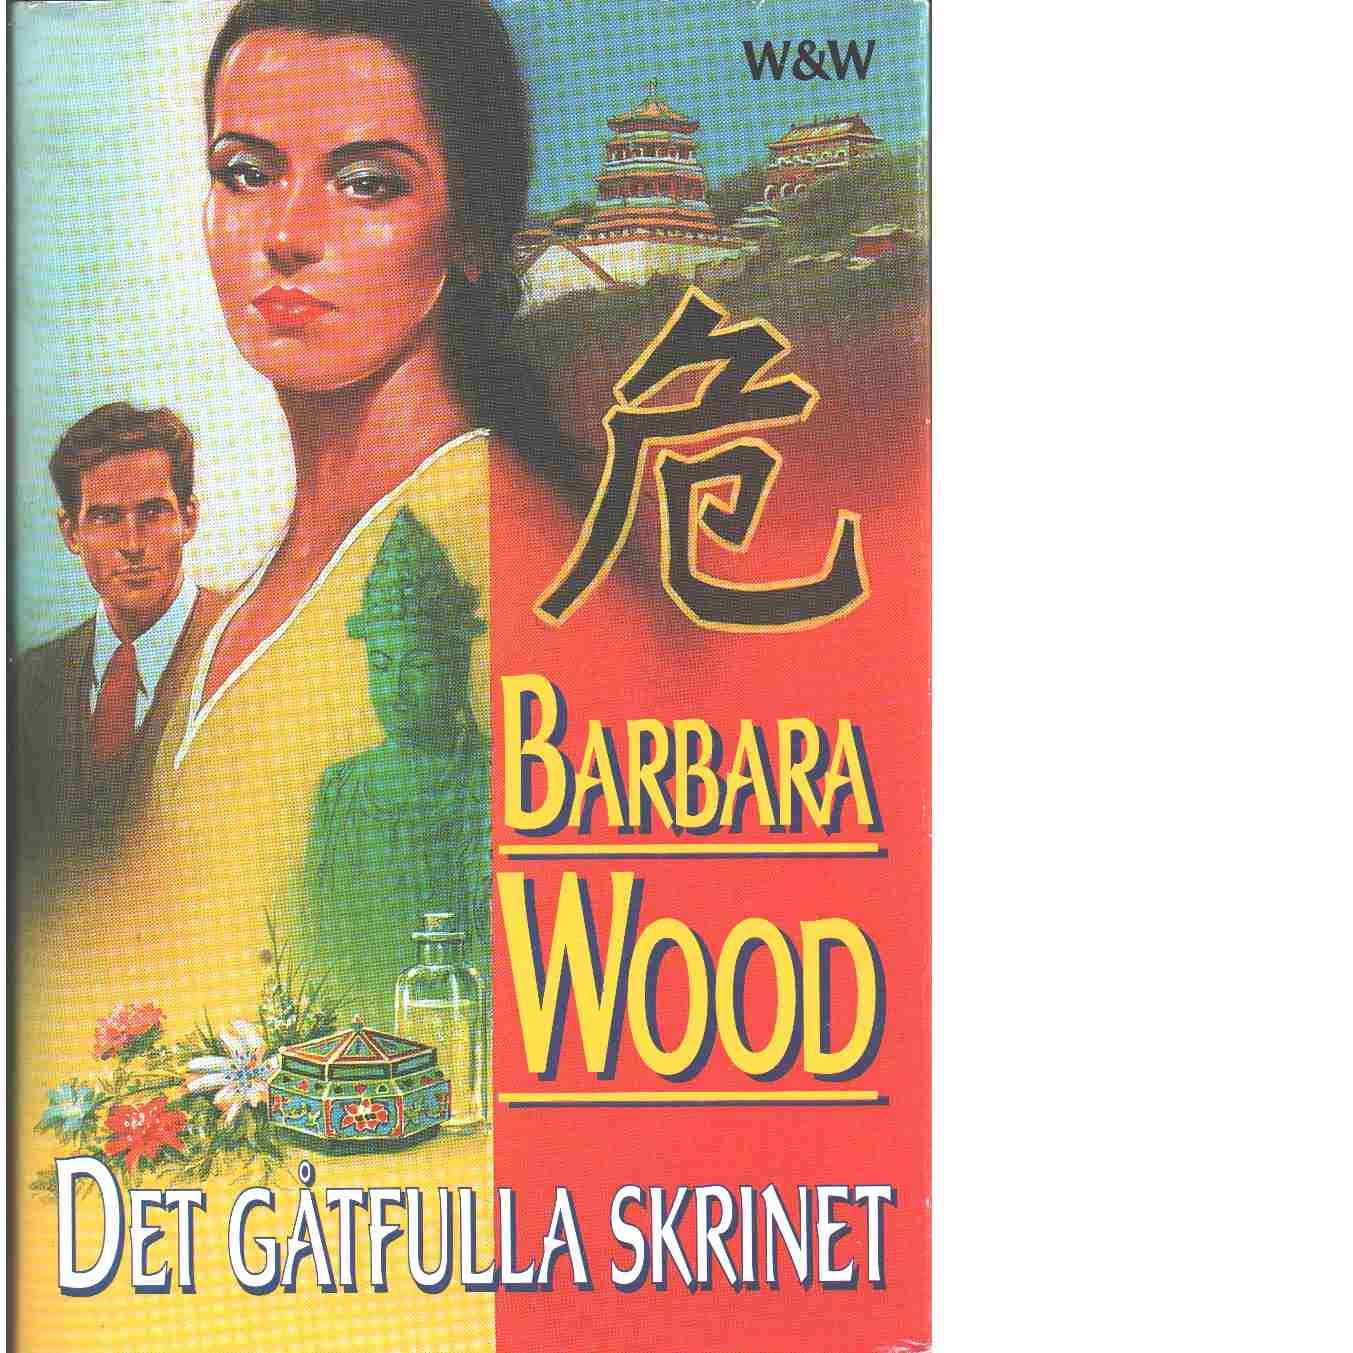 Det gåtfulla skrinet - Wood, Barbara